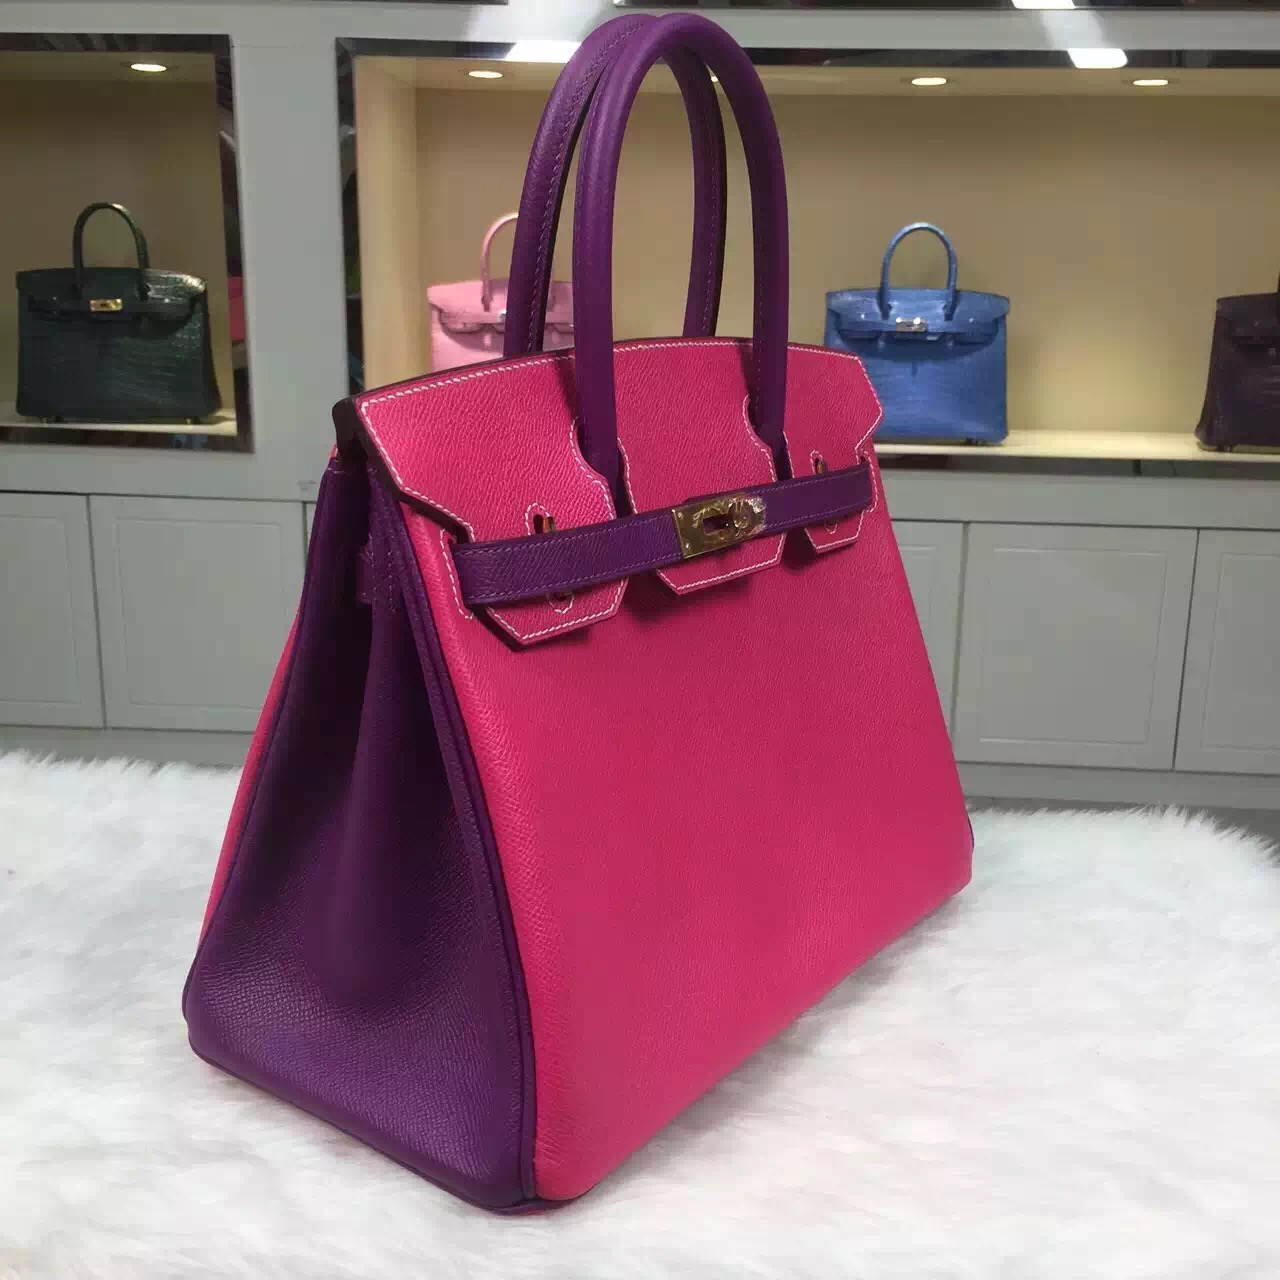 Luxury Hermes Birkin Bag 30CM E5 Candy Pink/P9 Anemone Purple Epsom Leather